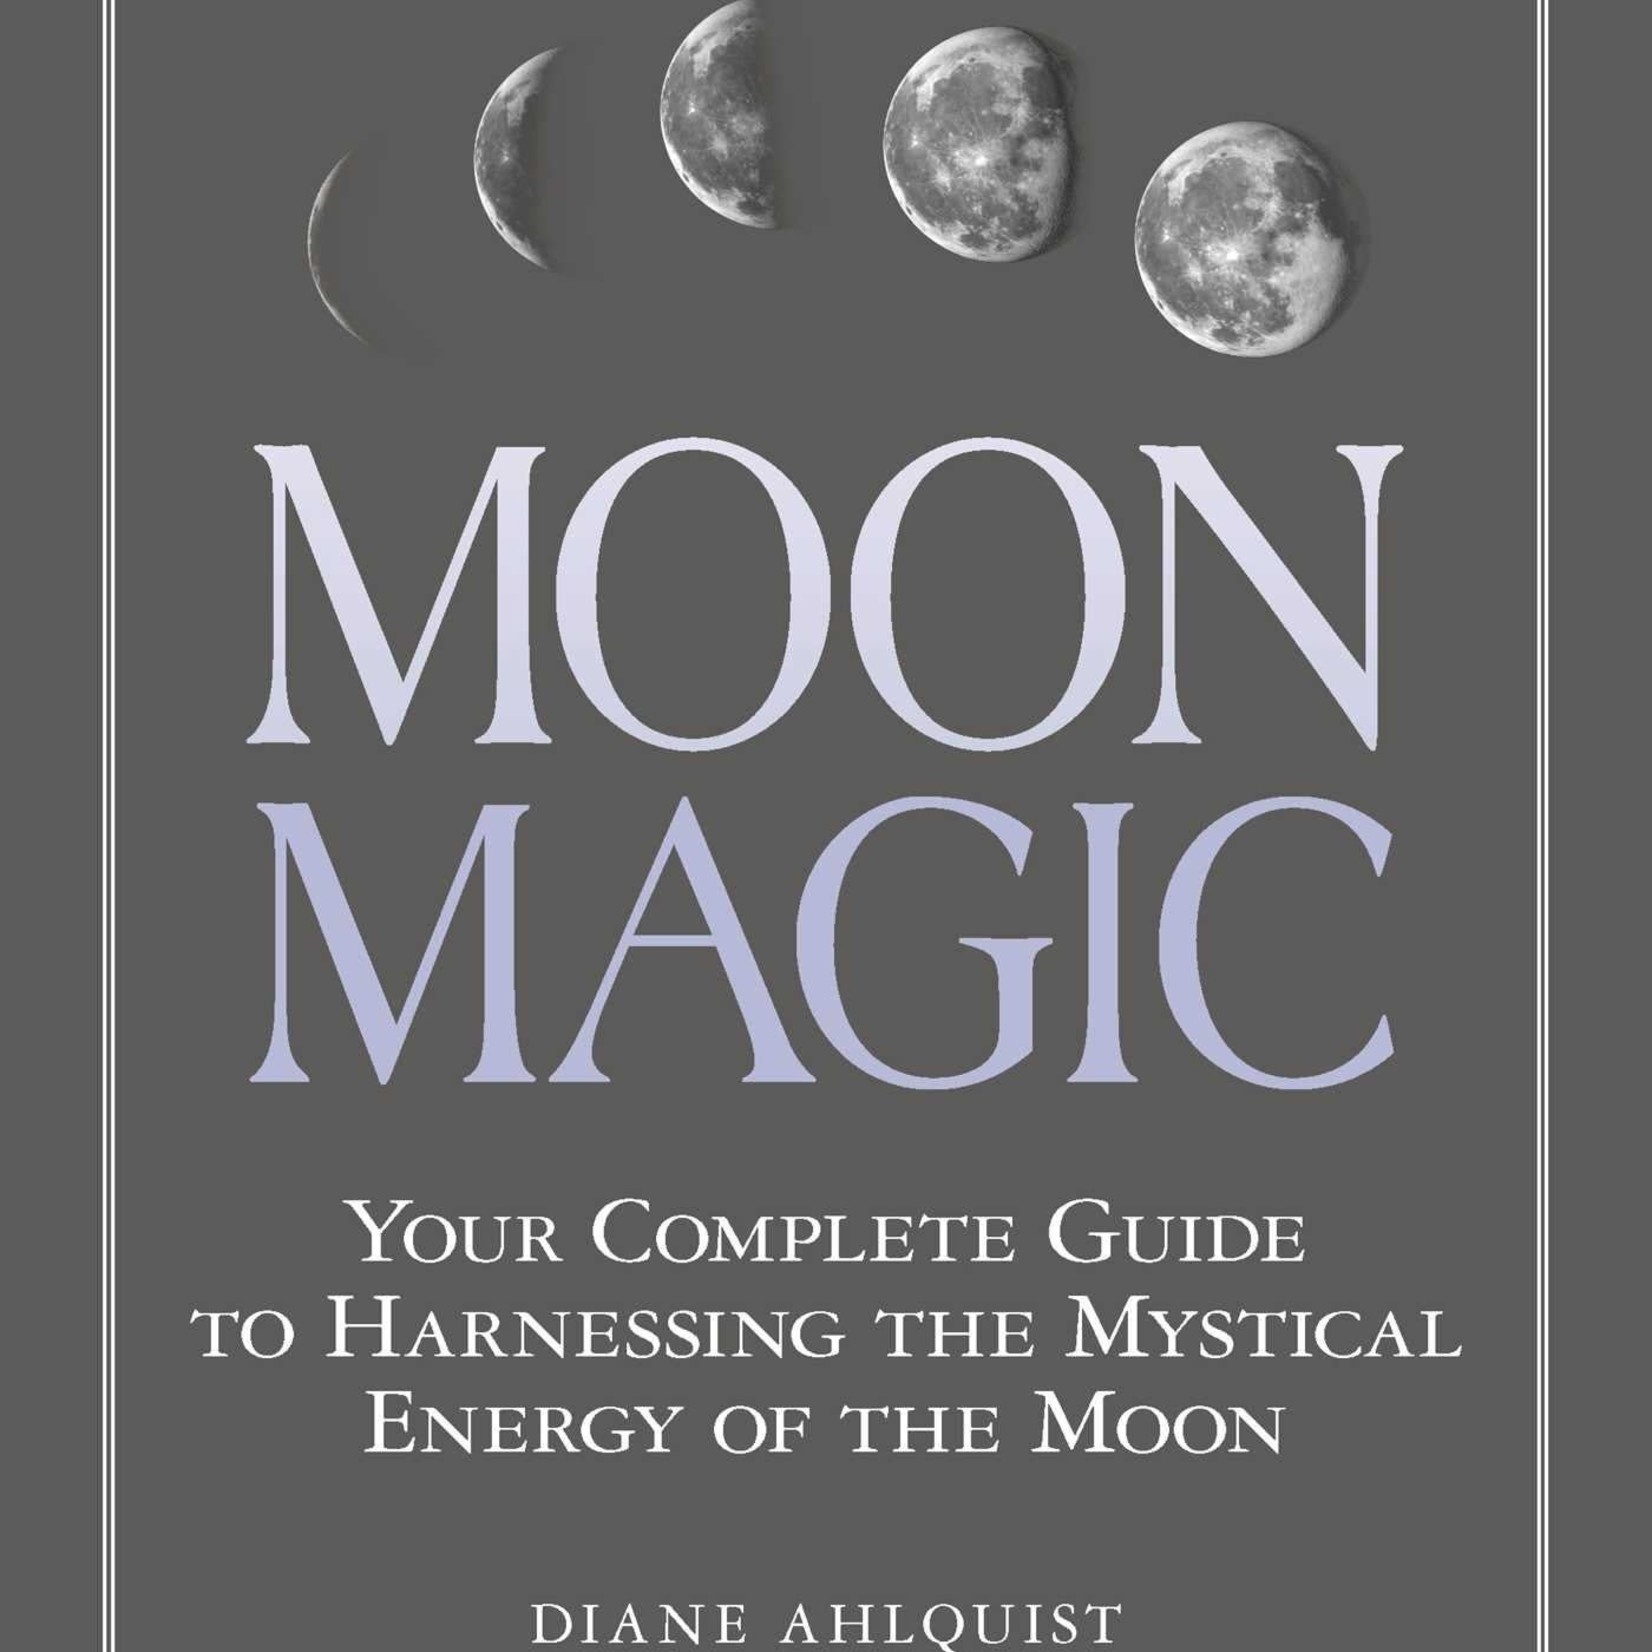 Moon Magic - Your Complete Guide